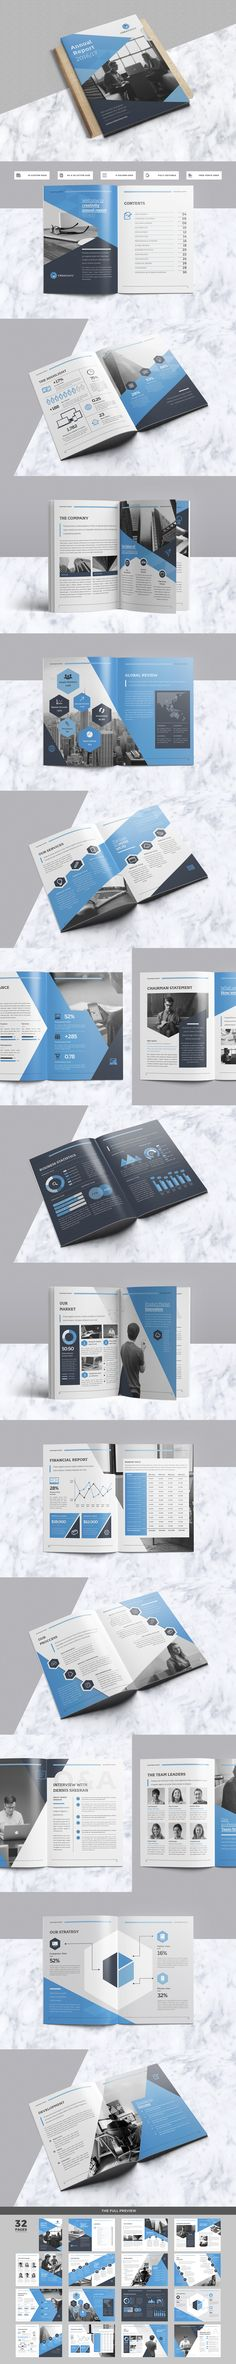 Samsung engineering sustainability report template